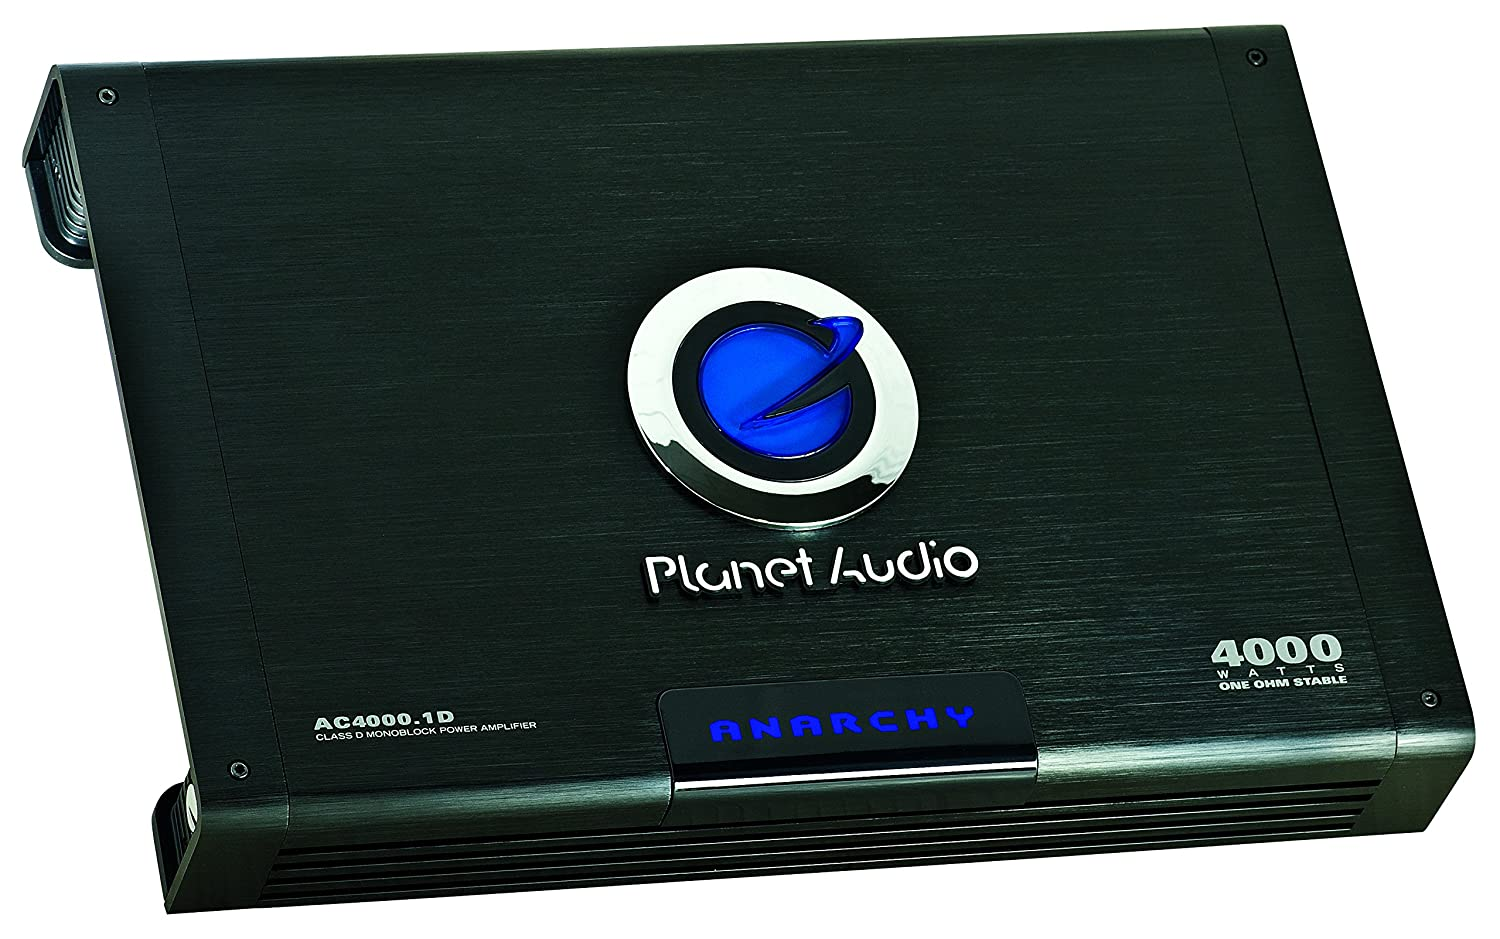 Planet Audio Ac40001d Anarchy 4000 Watt 1 Ohm Stable Note Conquest Power Amp With 300b Class D Monoblock Car Amplifier Remote Subwoofer Control Electronics